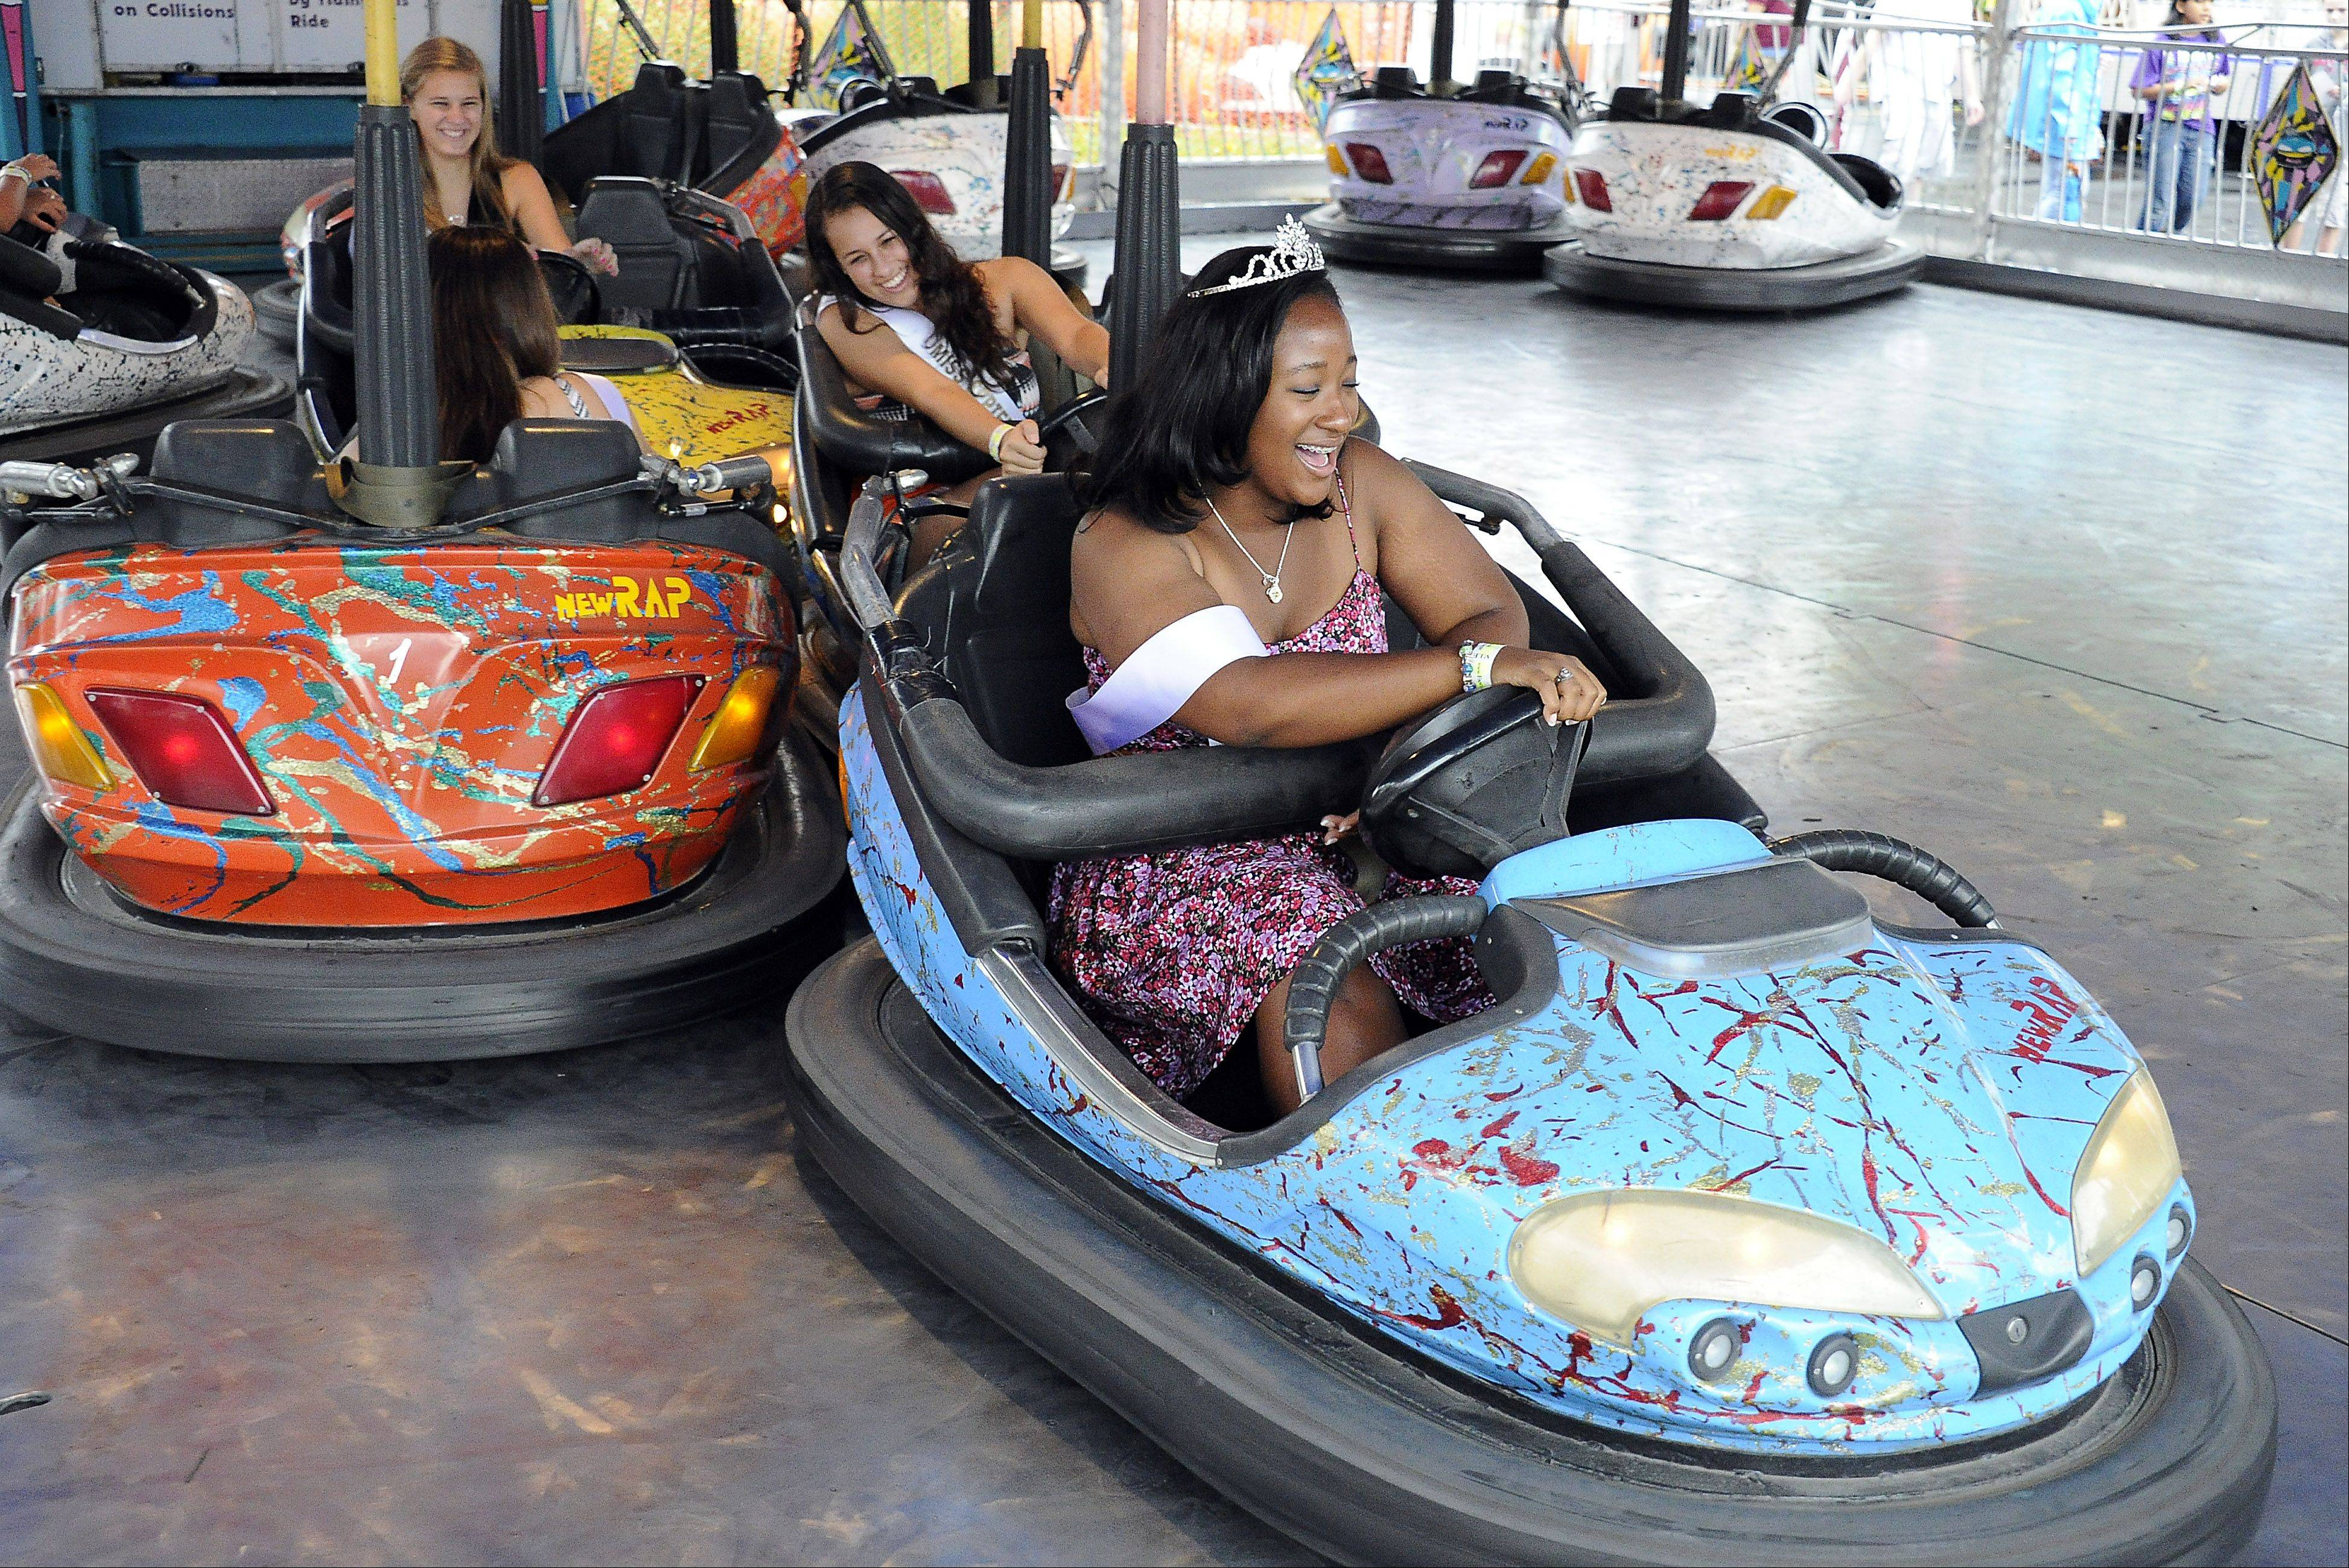 Miss Septemberfest Mariah Ghant, 17, of Schaumburg gets bumped by her friends as they ride the bumper cars at Septemberfest in Schaumburg on Saturday.